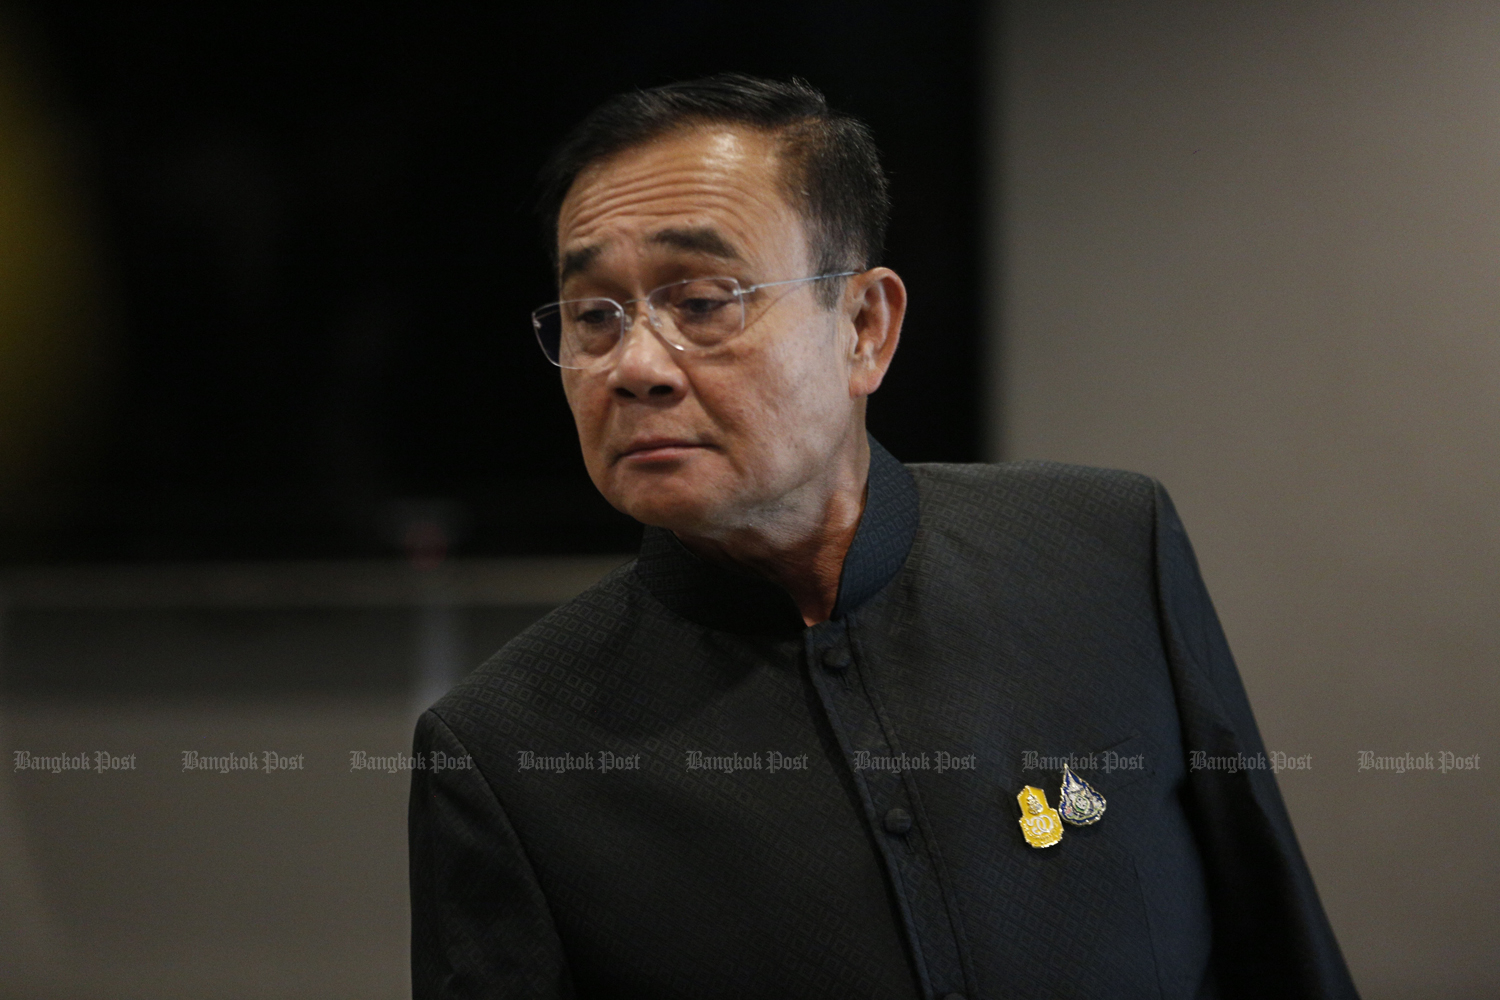 Prime Minister Prayut Chan-o-cha is being urged to correct a mistake over an alleged failure to recite the full text of an oath during the swearing-in ceremony. (Bangkok Post photo)